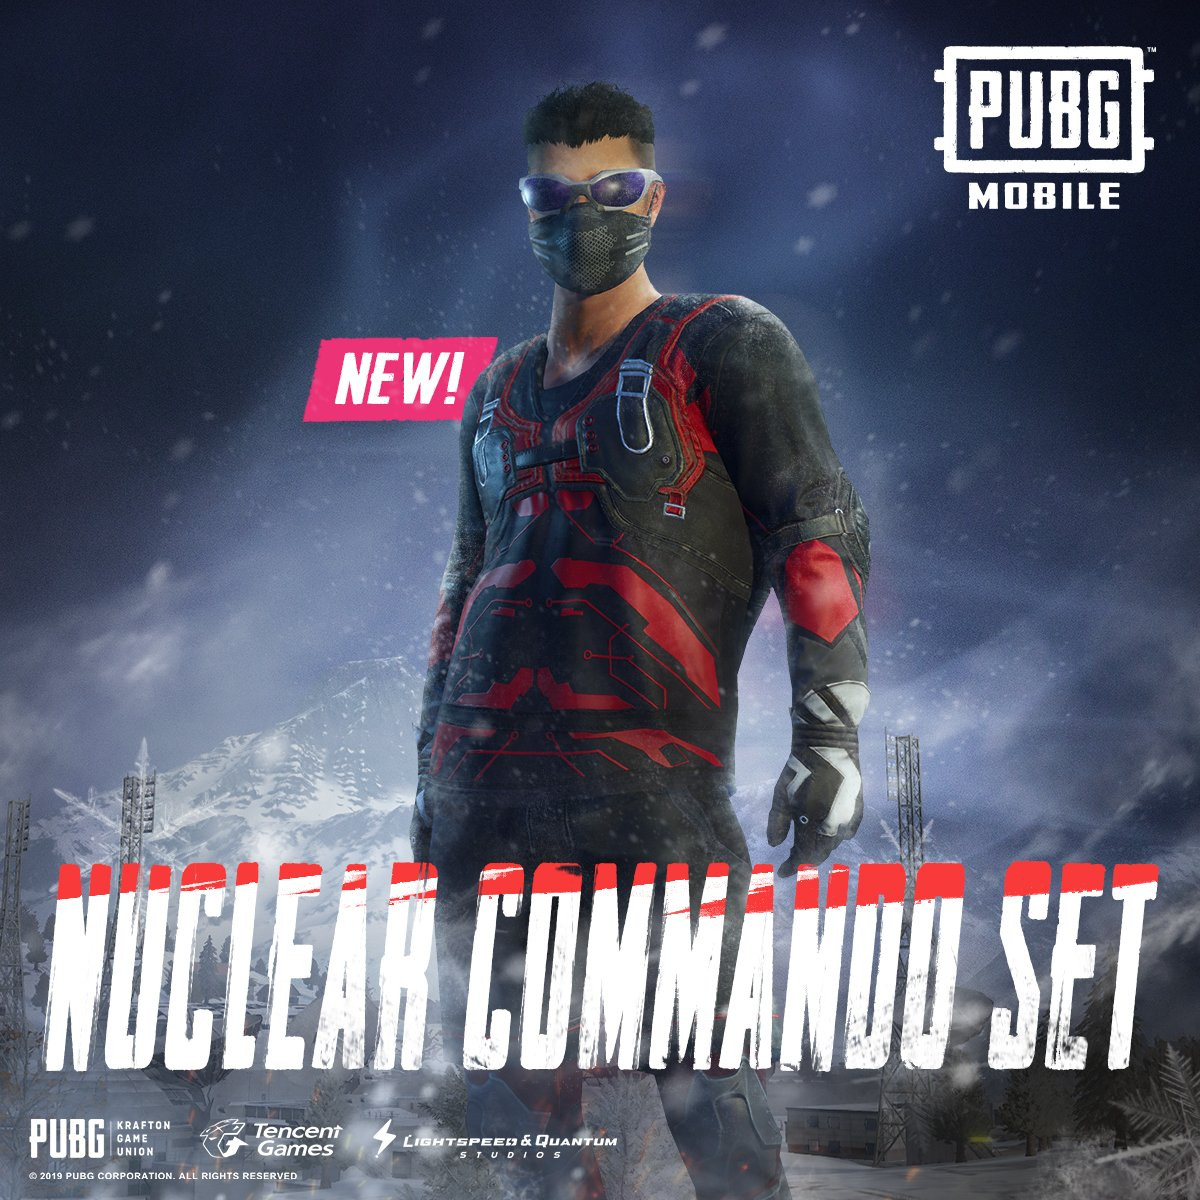 Preview the skin - Nuclear Commando Set in PUBG MOBILE from front to back here.